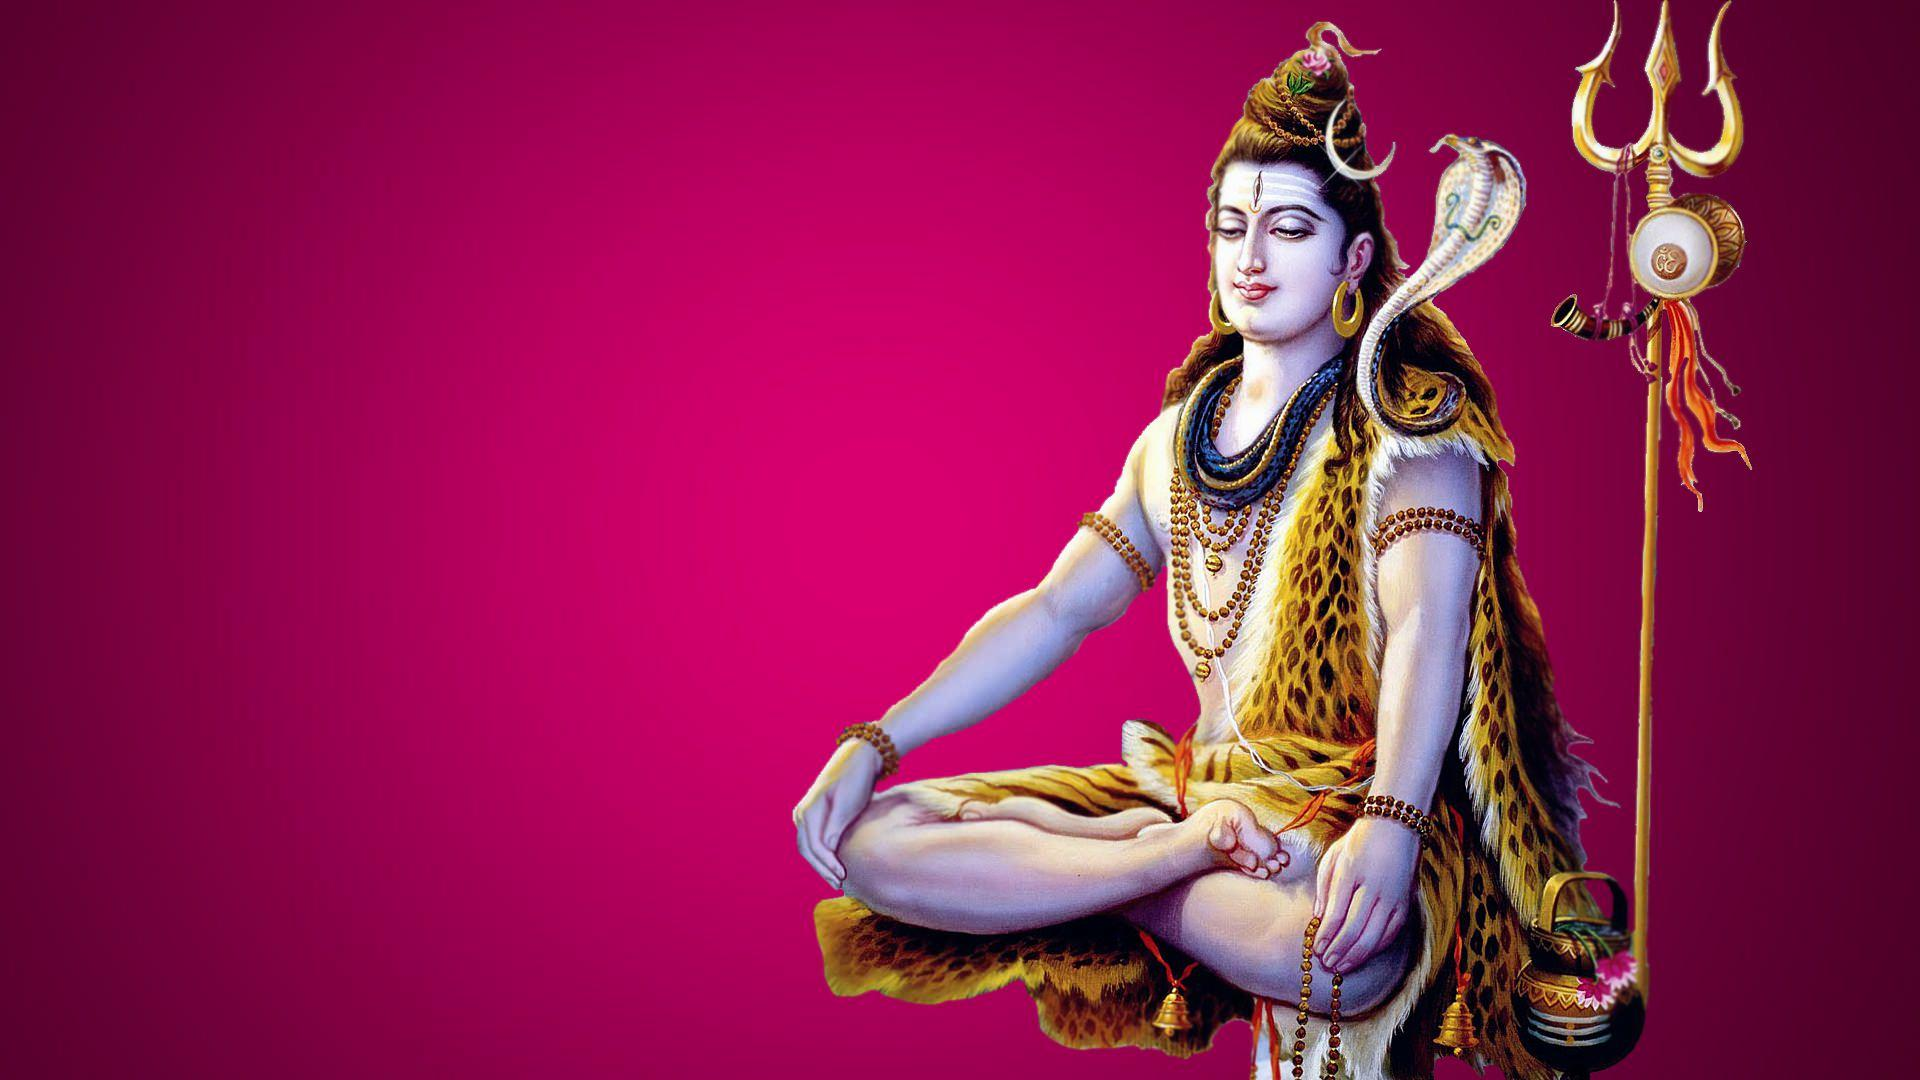 Shiva Wallpaper Hindu Wallpaper Lord Shiva Ji Wallpapers: Lord Shiva Images, Lord Shiva Photos, Hindu God Shiva HD